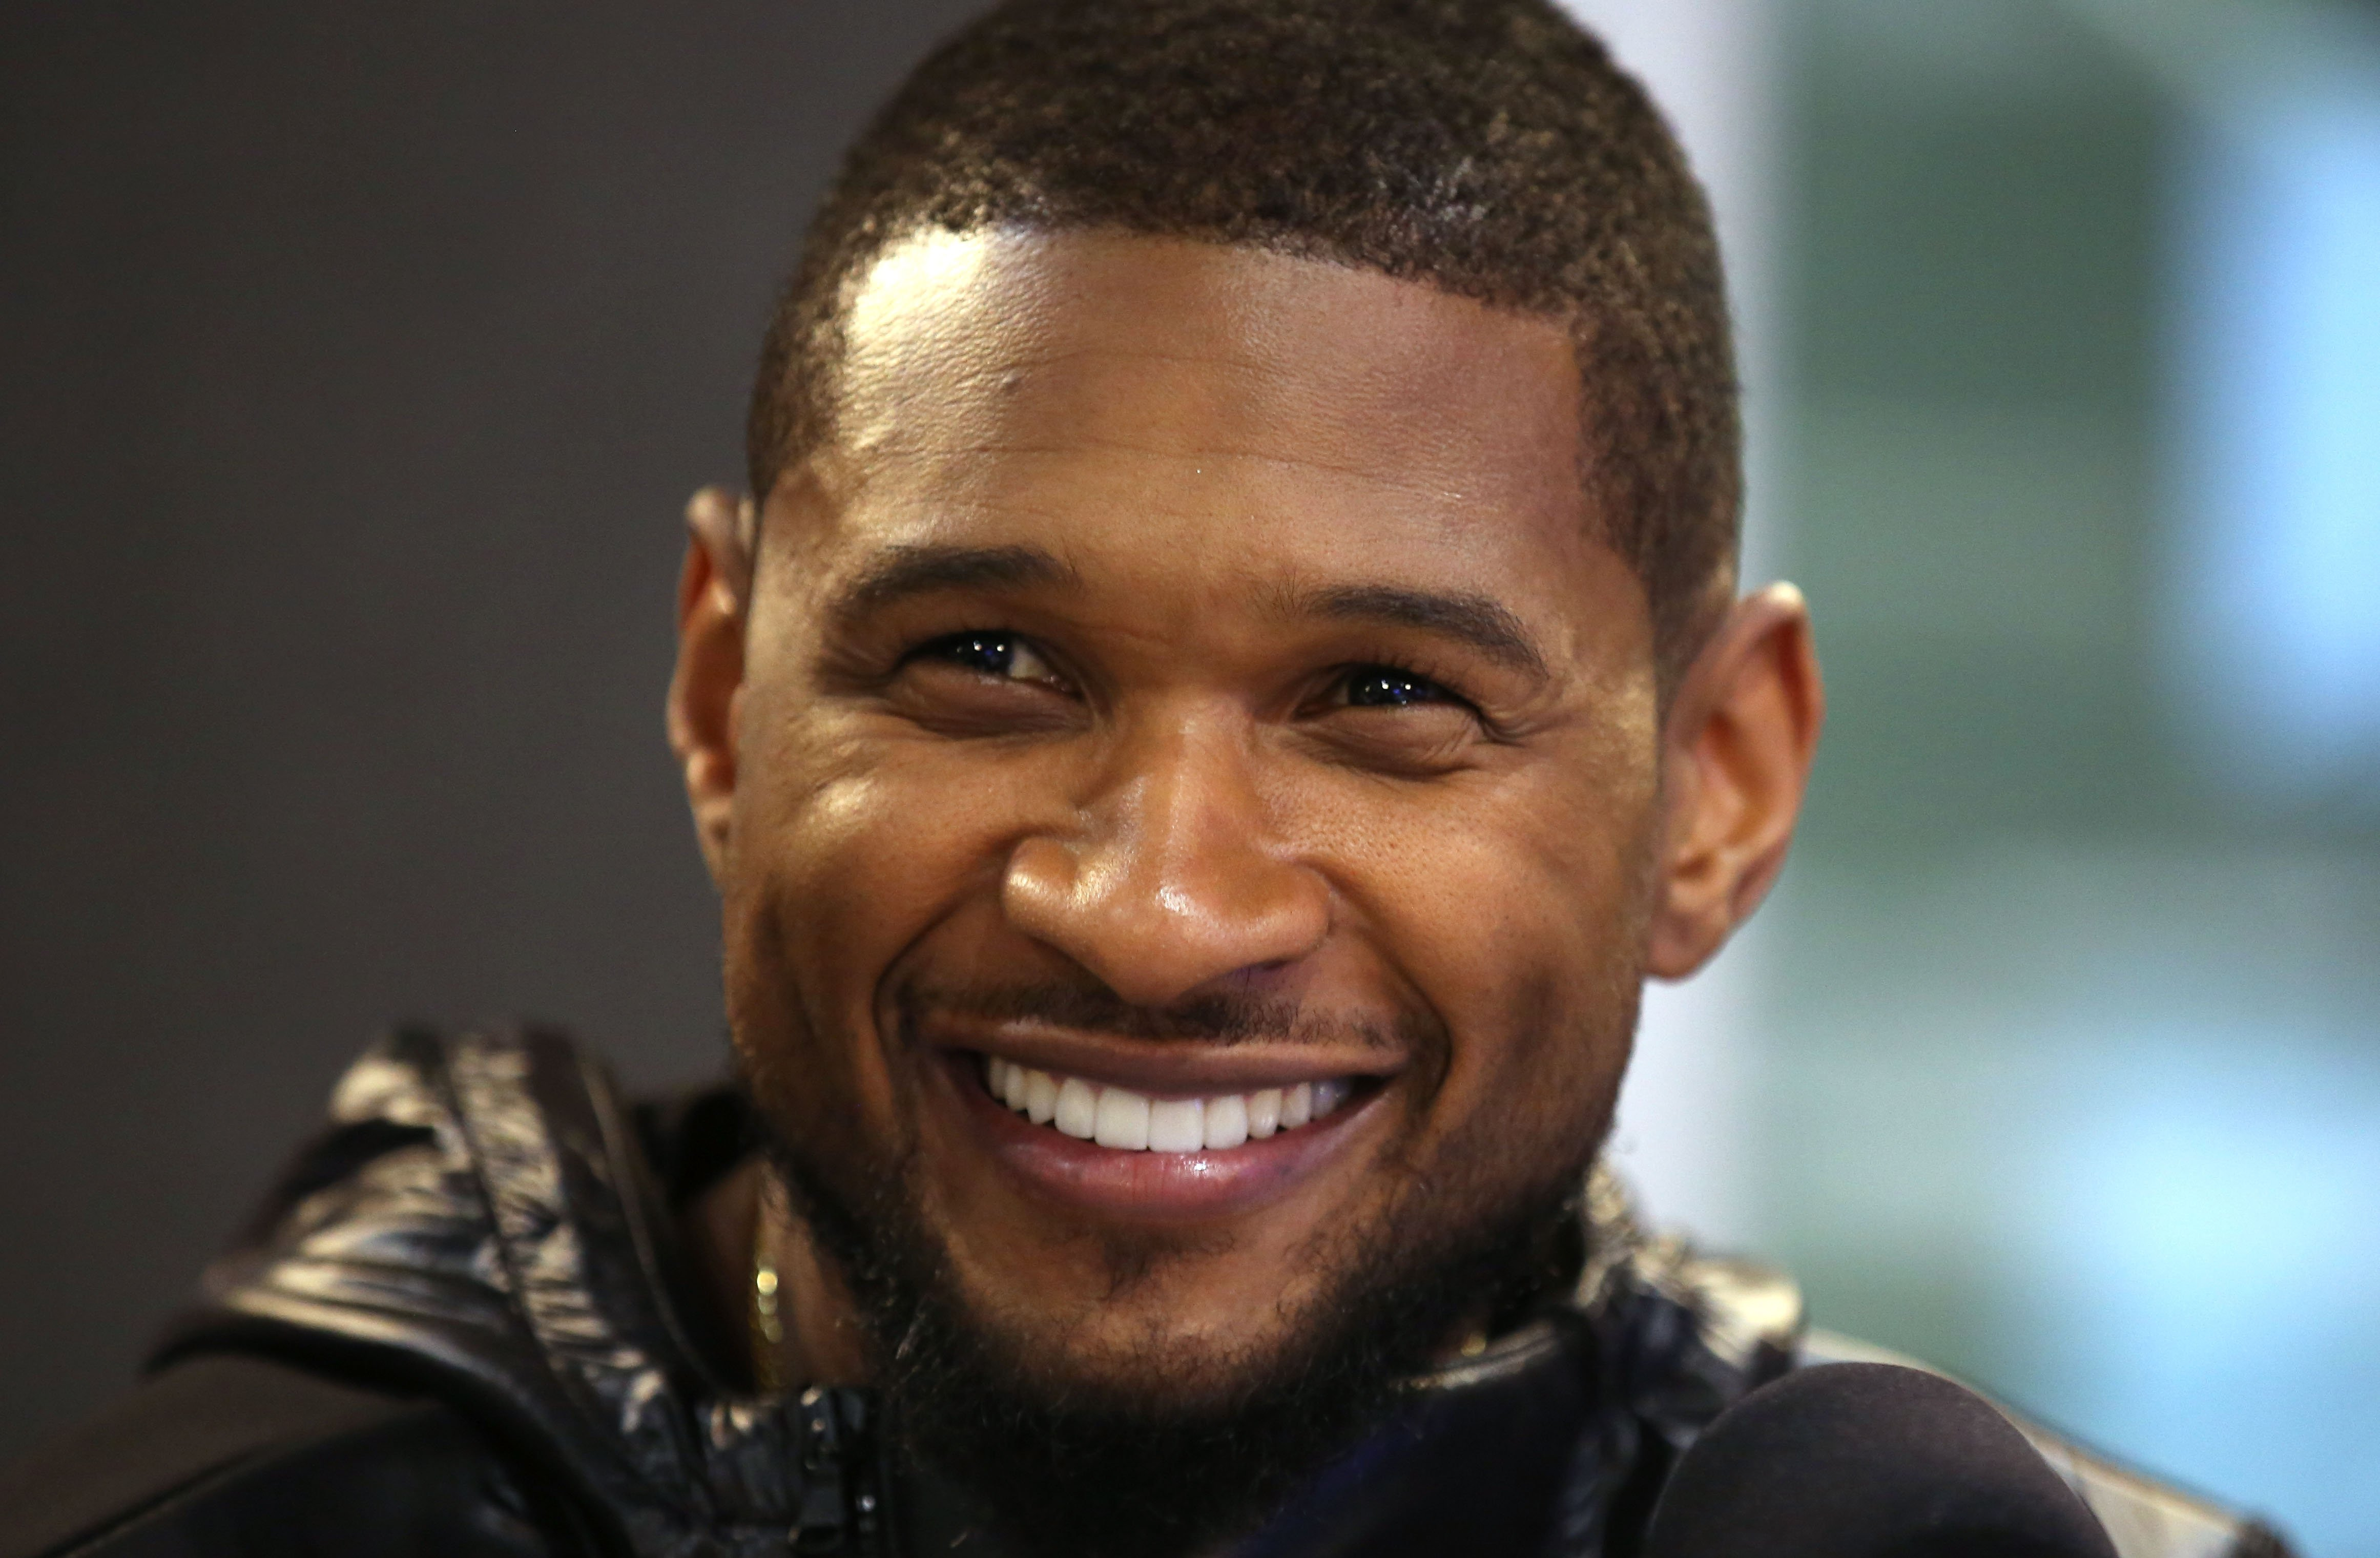 Usher visits Kiss FM Studio in London, England on December 17, 2014. | Photo: Getty Images